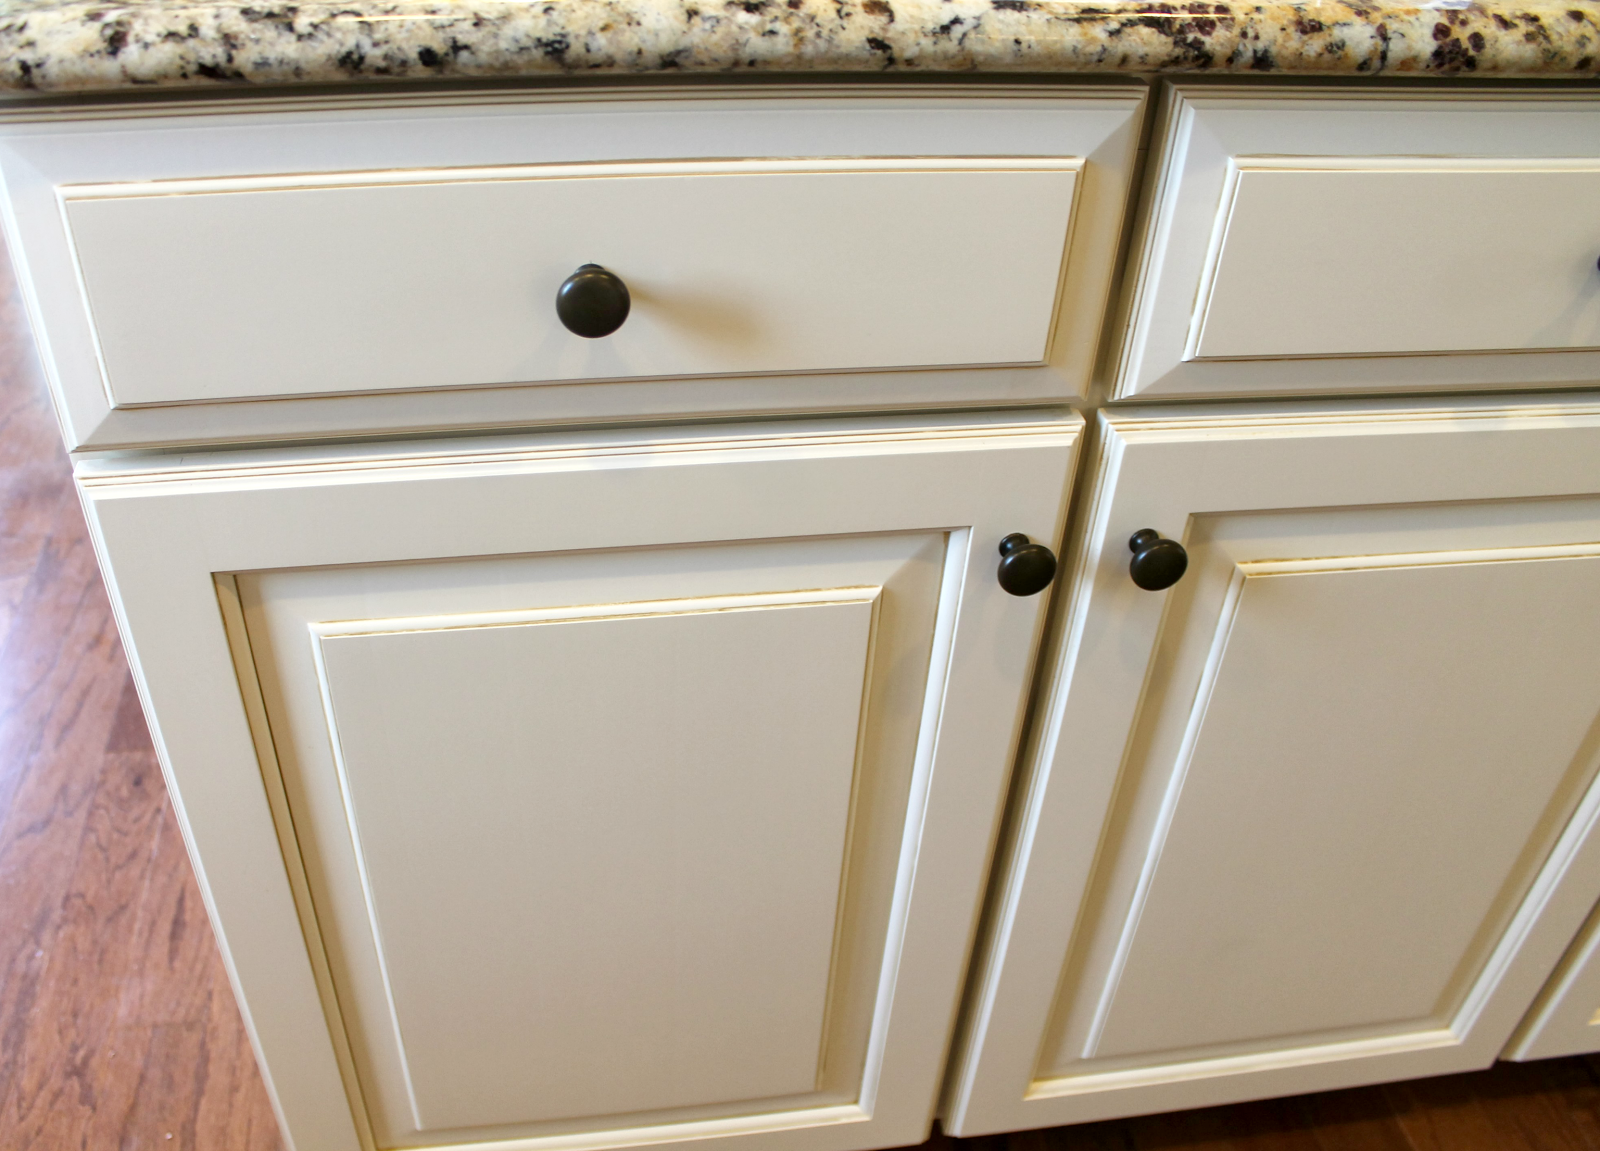 Kitchen Cabinet Paints And Glazes Timberlake Rushmore Painted Maple Glaze Cabinets Ryan Homes